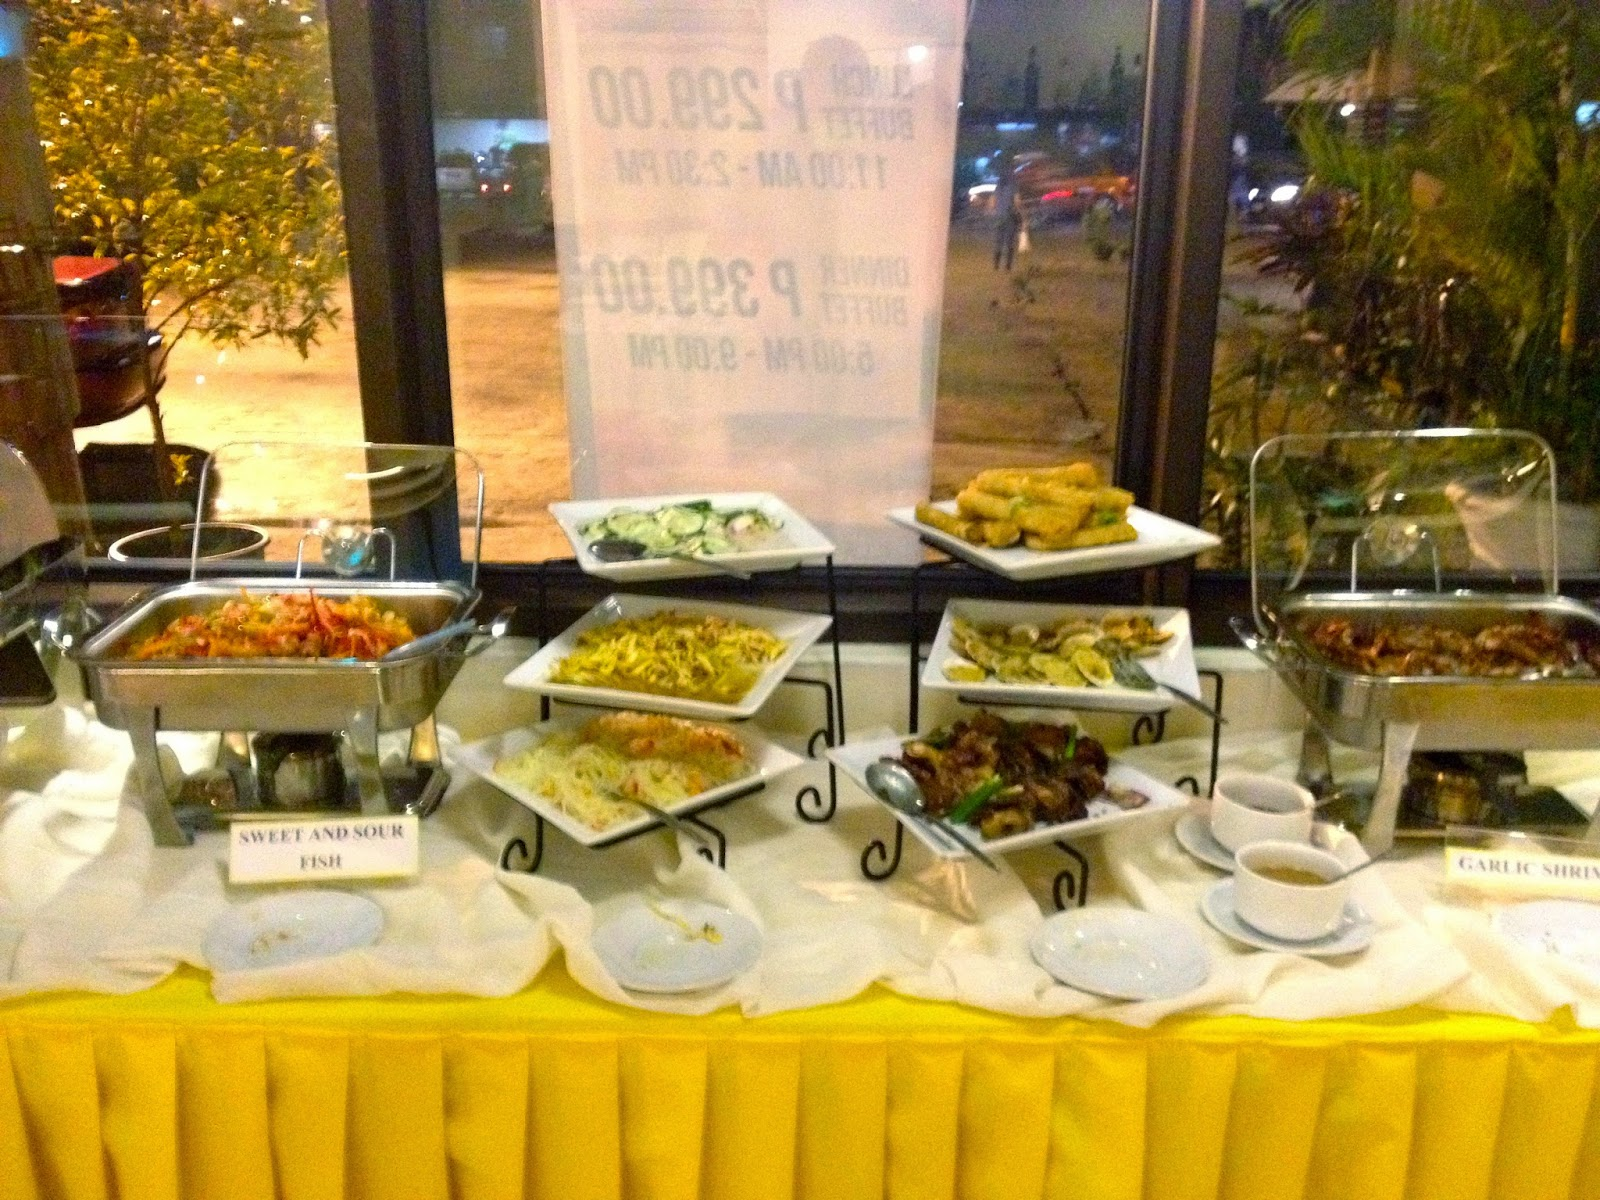 Feast-all-you-can at Golden Cowrie A.S. Fortuna, Mandaue City